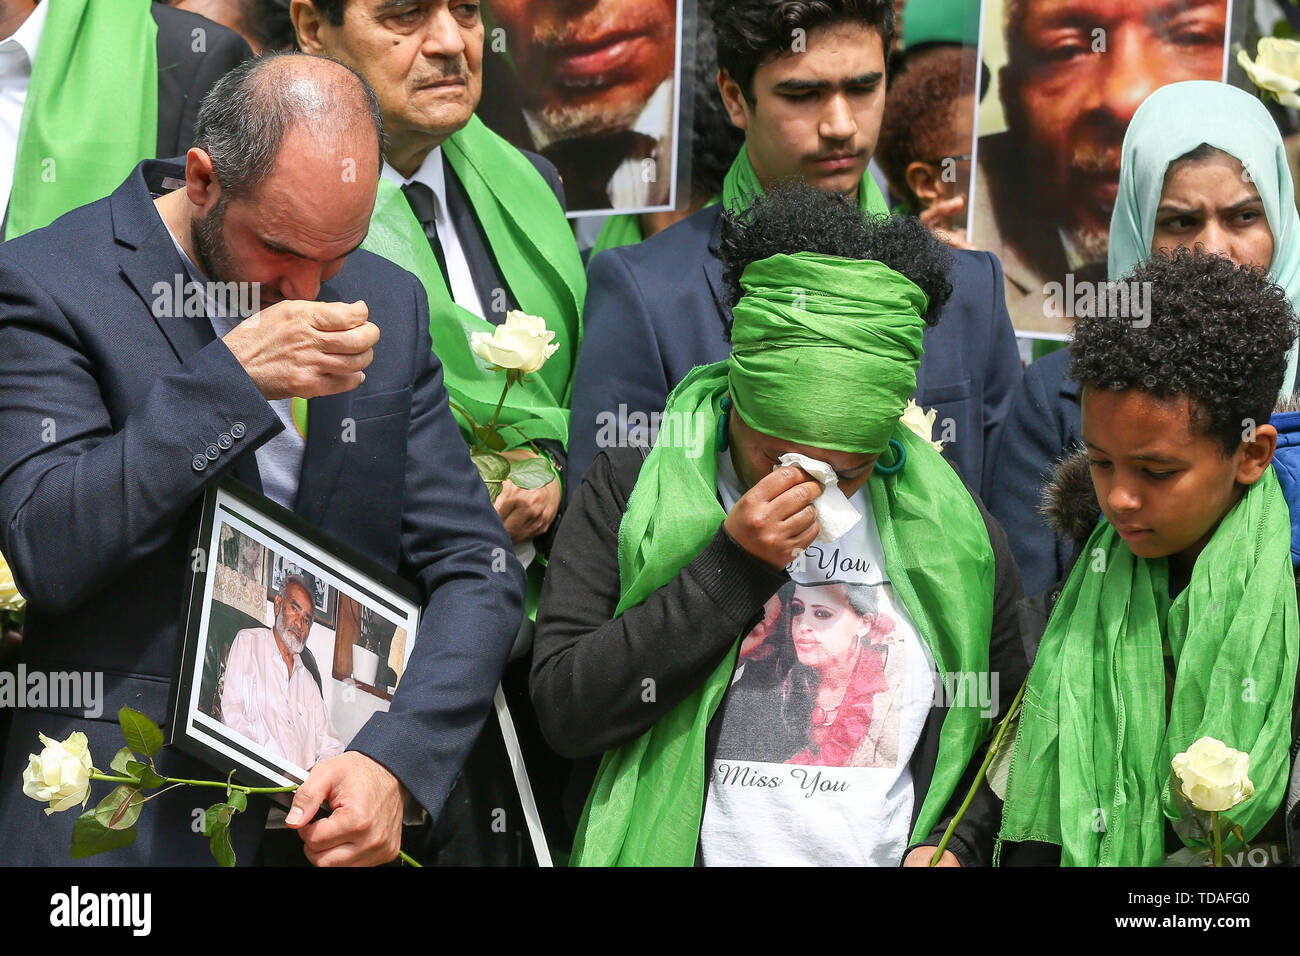 North Kensington, West London. UK 14 Jun 2019 - Survivors, family and friends wearing symbolic green scarf outside St Helen's Church following a service at  to commemorate the second anniversary of the Grenfell Tower fire. On 14 June 2017, just before 1:00Êam a fire broke out in the kitchen of the fourth floor flat at the 24-storey residential tower block in North Kensington, West London, which took the lives of 72 people. More than 70 others were injured and 223 people escaped.  Credit: Dinendra Haria/Alamy Live News - Stock Image